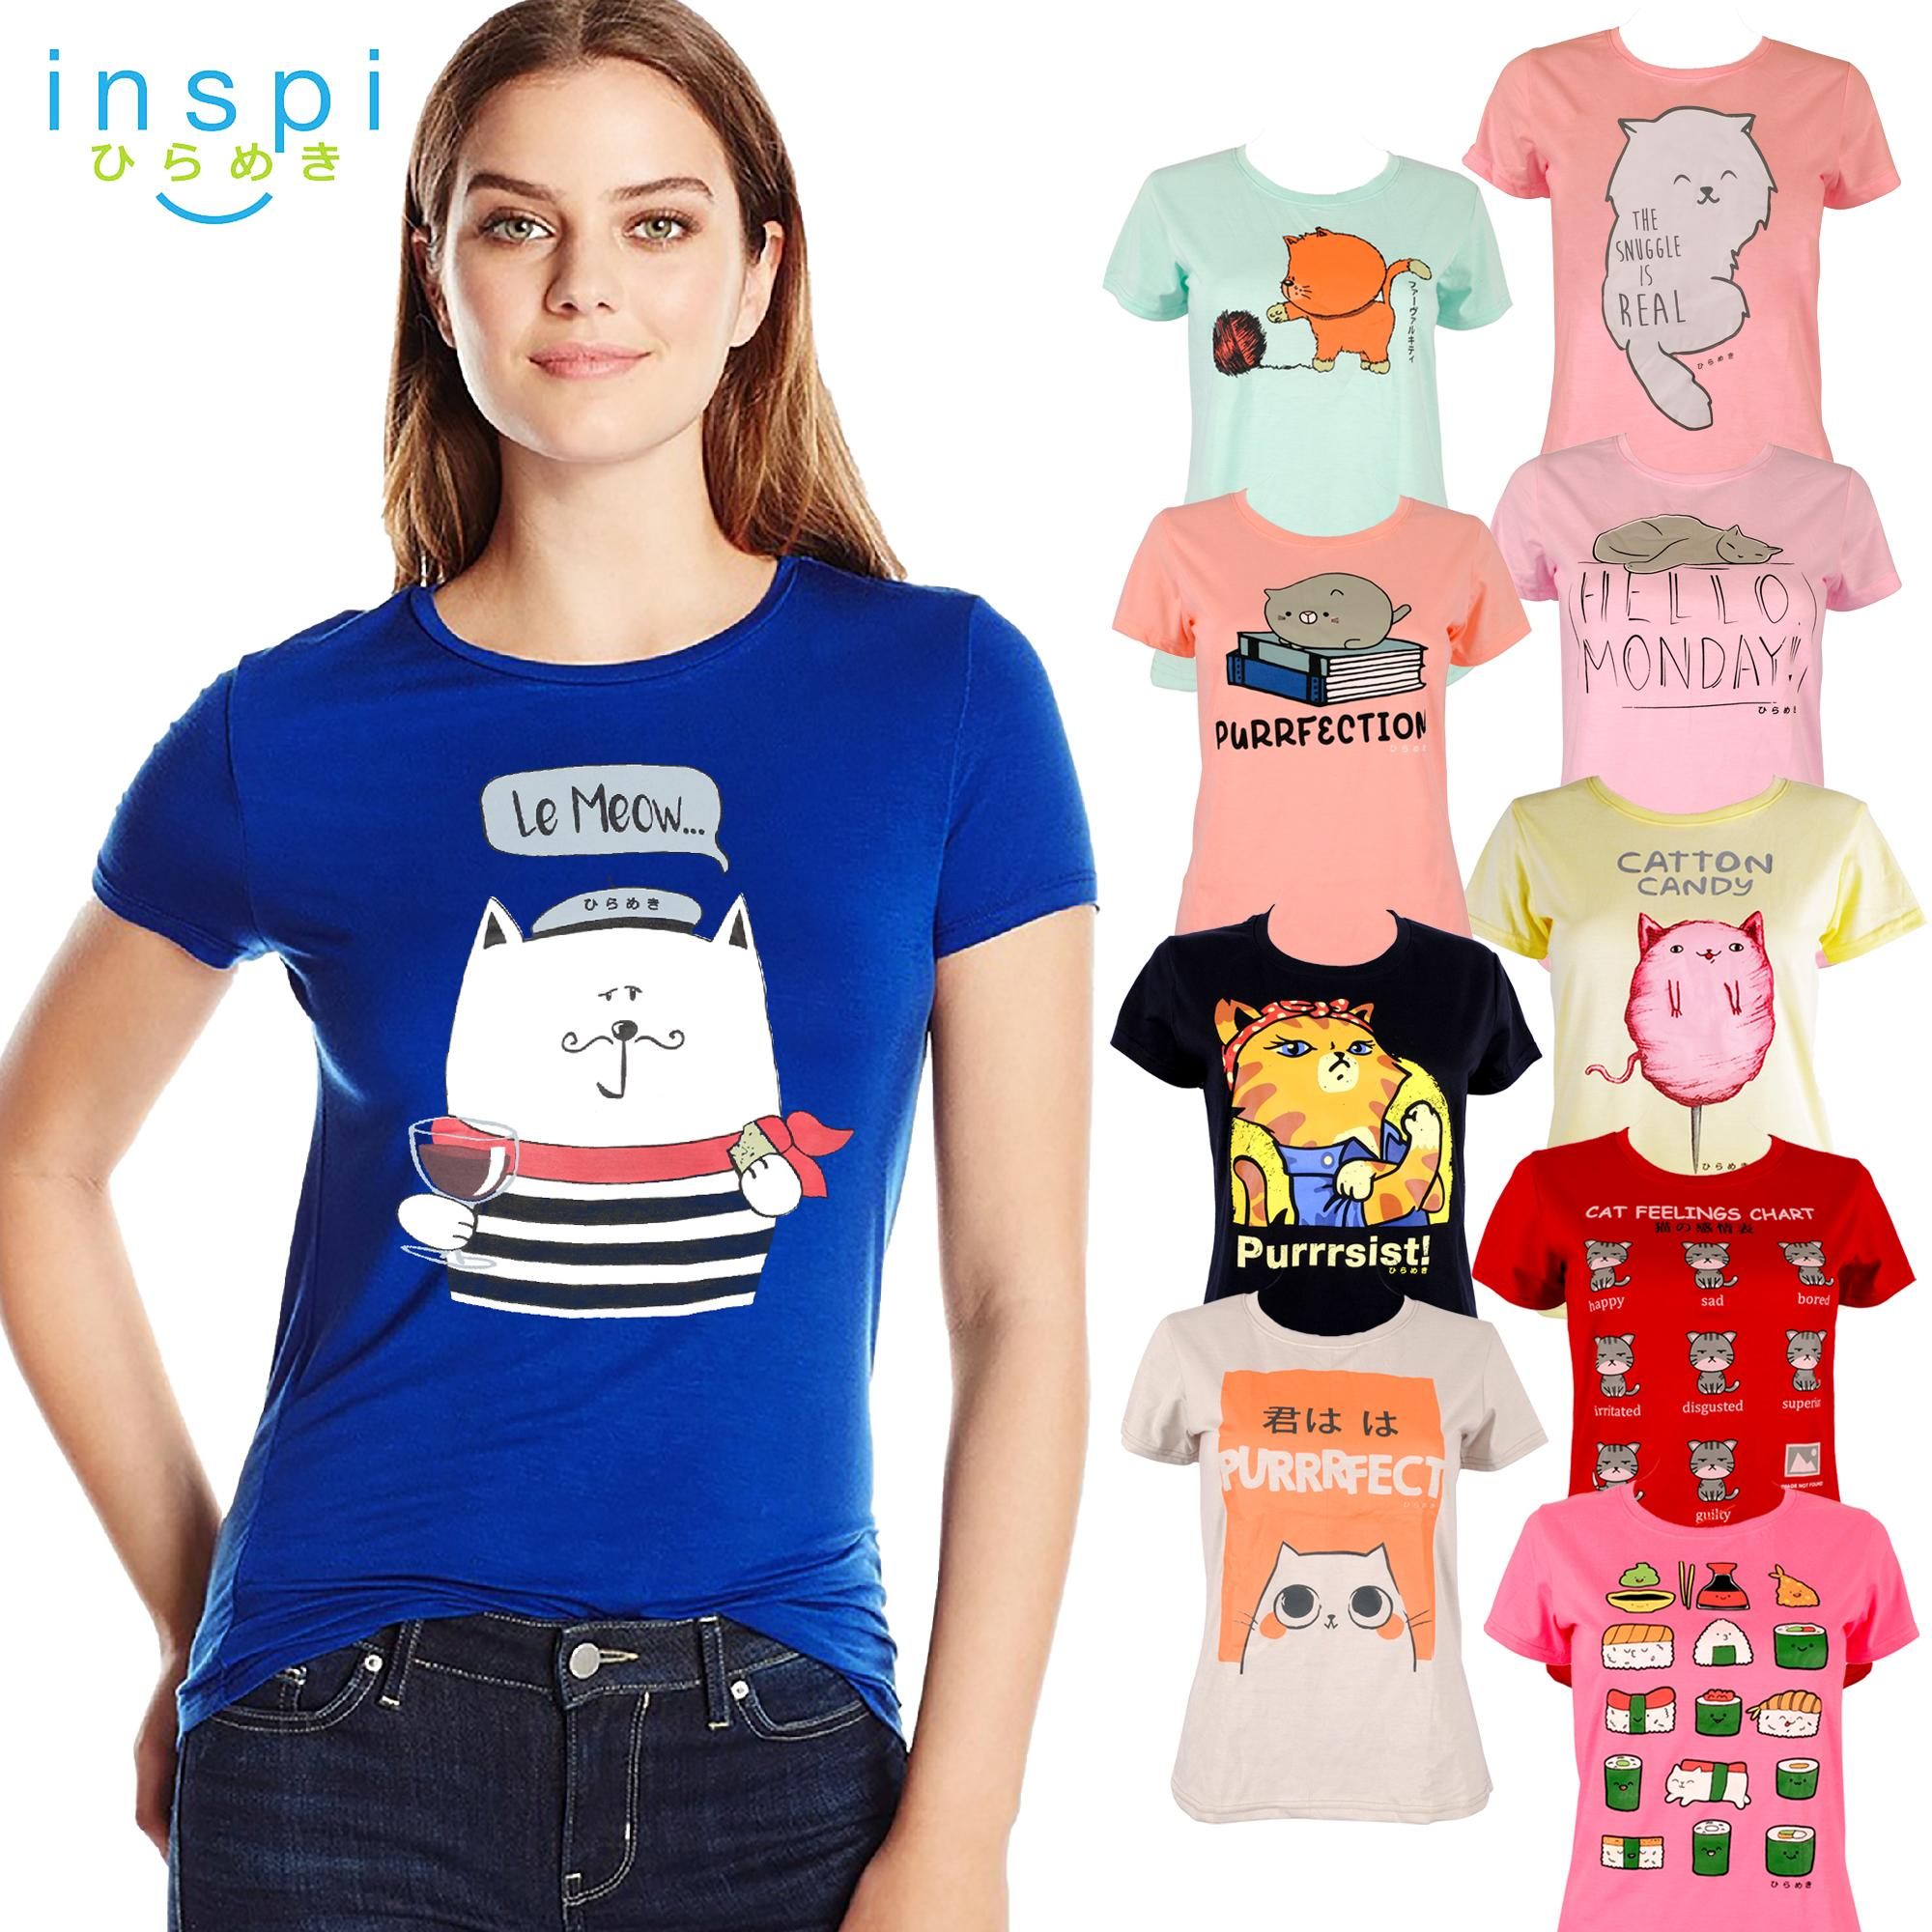 44d29ba30 INSPI Tees Ladies Neko Collection tshirt printed graphic tee Ladies t shirt  shirts women tshirts for